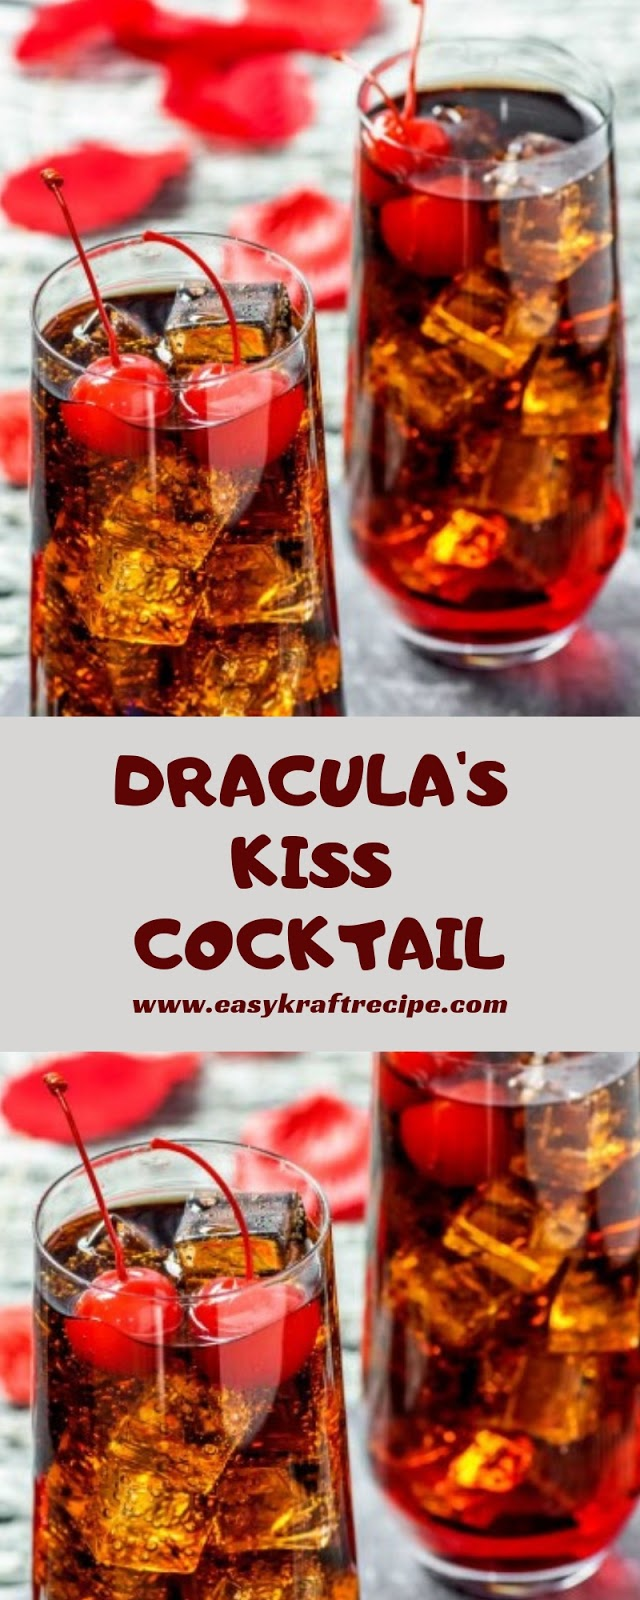 DRACULA'S KISS COCKTAIL